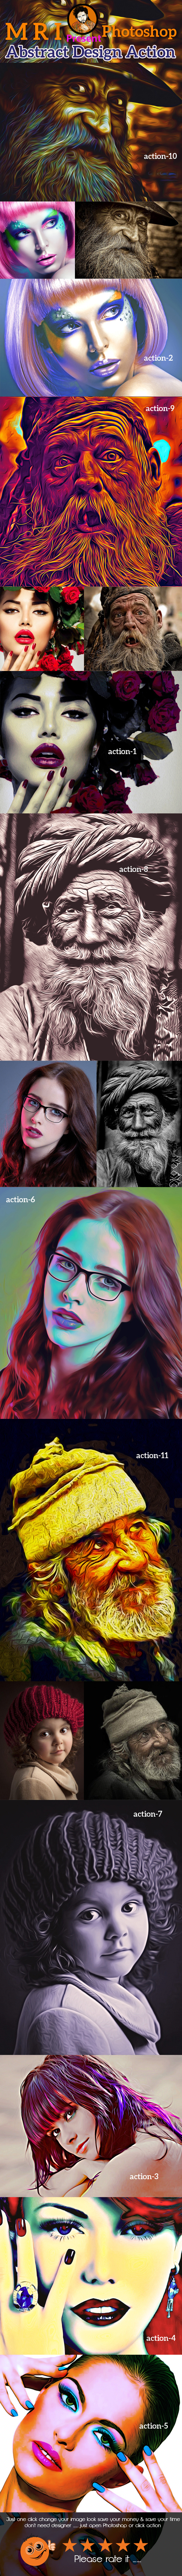 GraphicRiver Oil Art Action 9410045